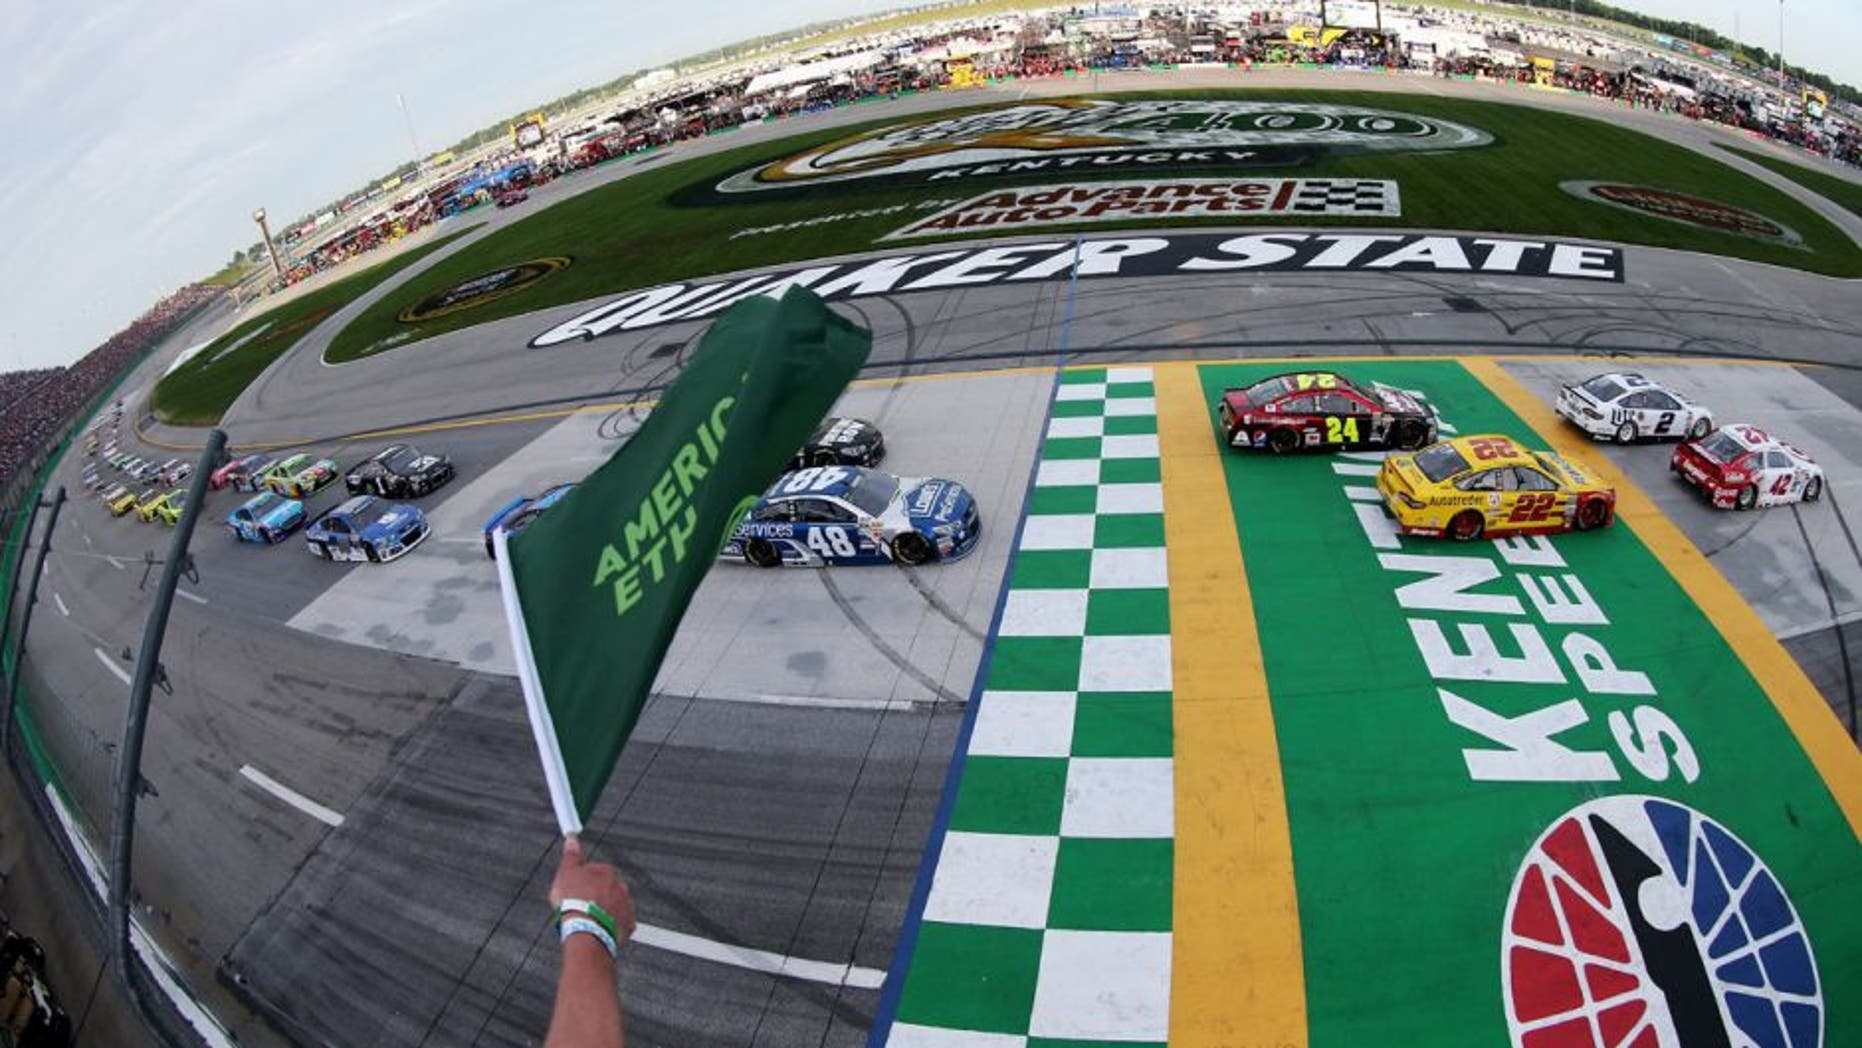 SPARTA, KY - JULY 11: Kyle Larson, driver of the #42 Target Chevrolet, and Brad Keselowski, driver of the #2 Miller Lite Ford, lead the field to the green flag for the running of the NASCAR Sprint Cup Series Quaker State 400 presented by Advance Auto Parts at Kentucky Speedway on July 11, 2015 in Sparta, Kentucky. (Photo by Brian Lawdermilk/NASCAR via Getty Images)